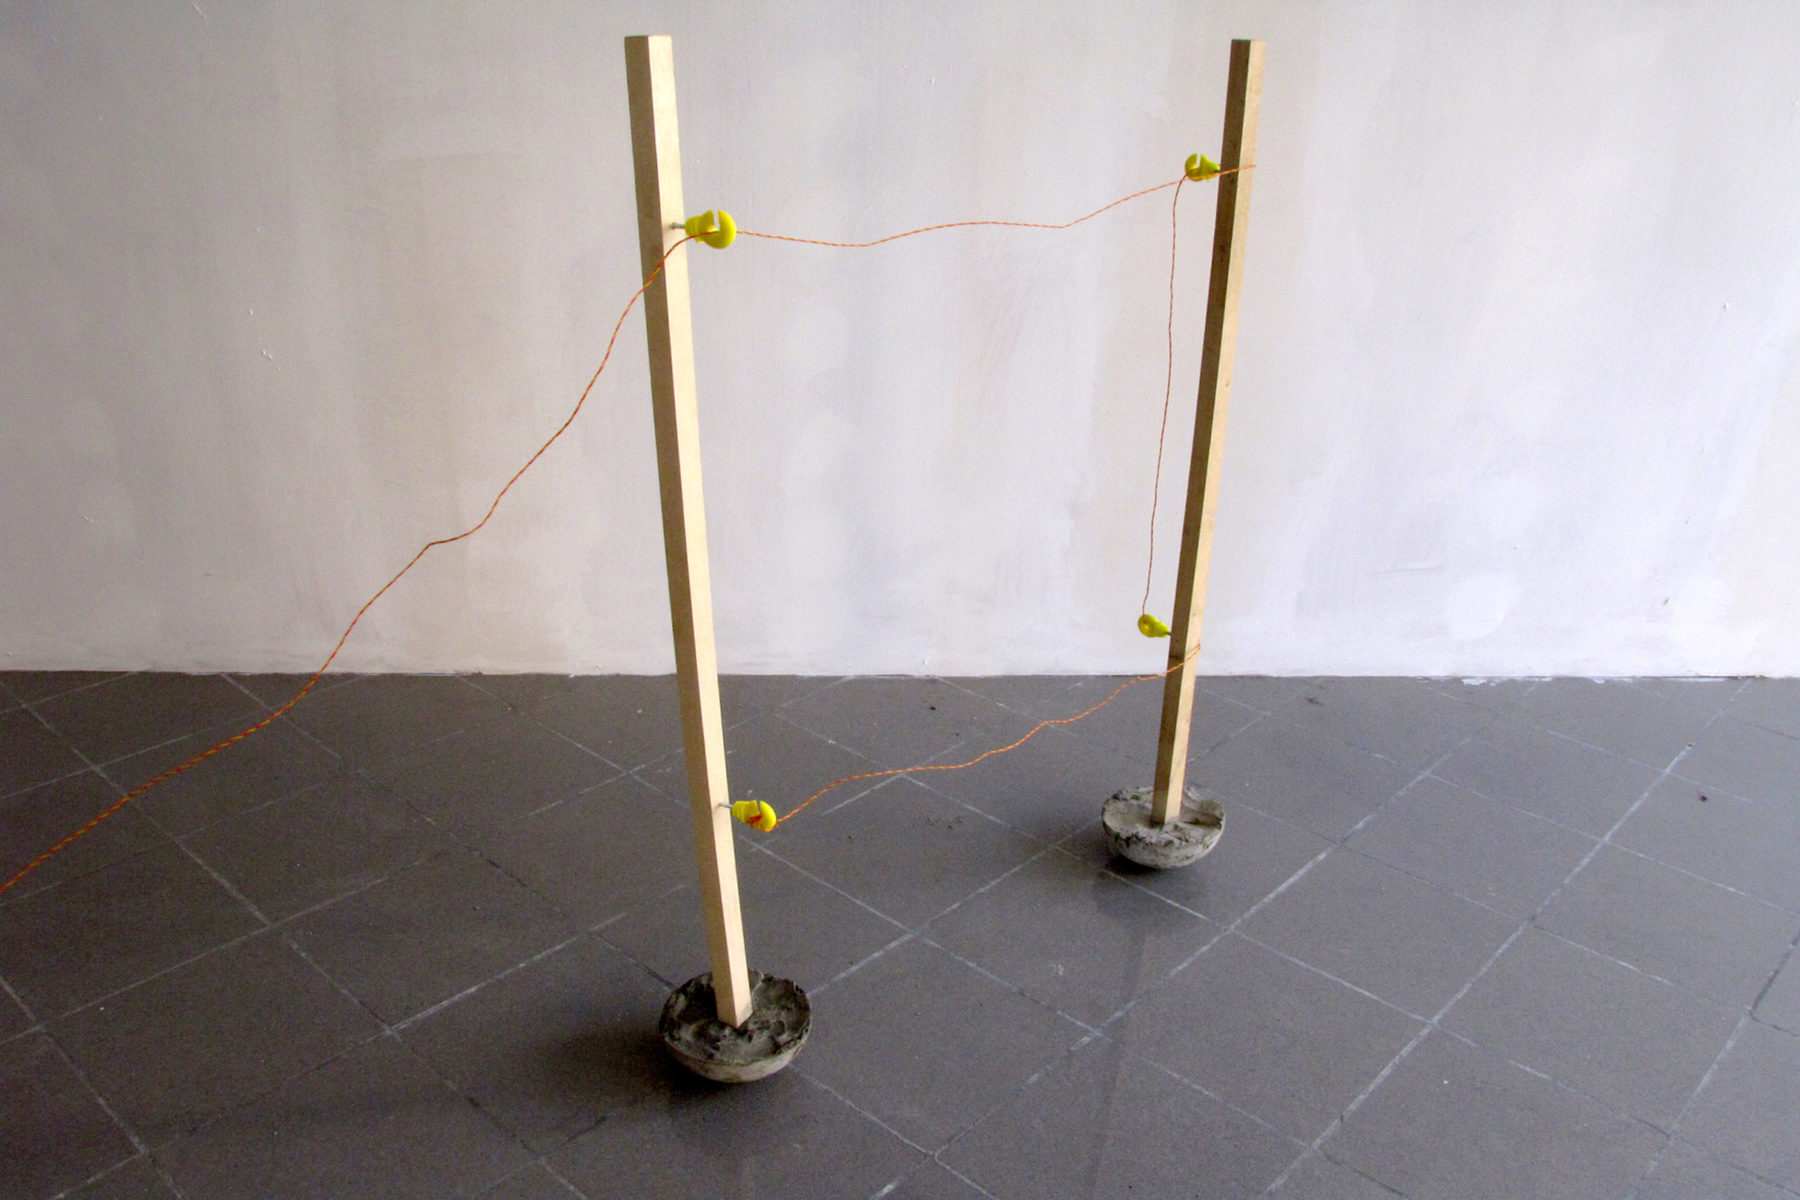 Nicola Genovese, The day of domestication, 2011, wood, cement, plastic, battery and electric wire, dimensions according to exhibiting space